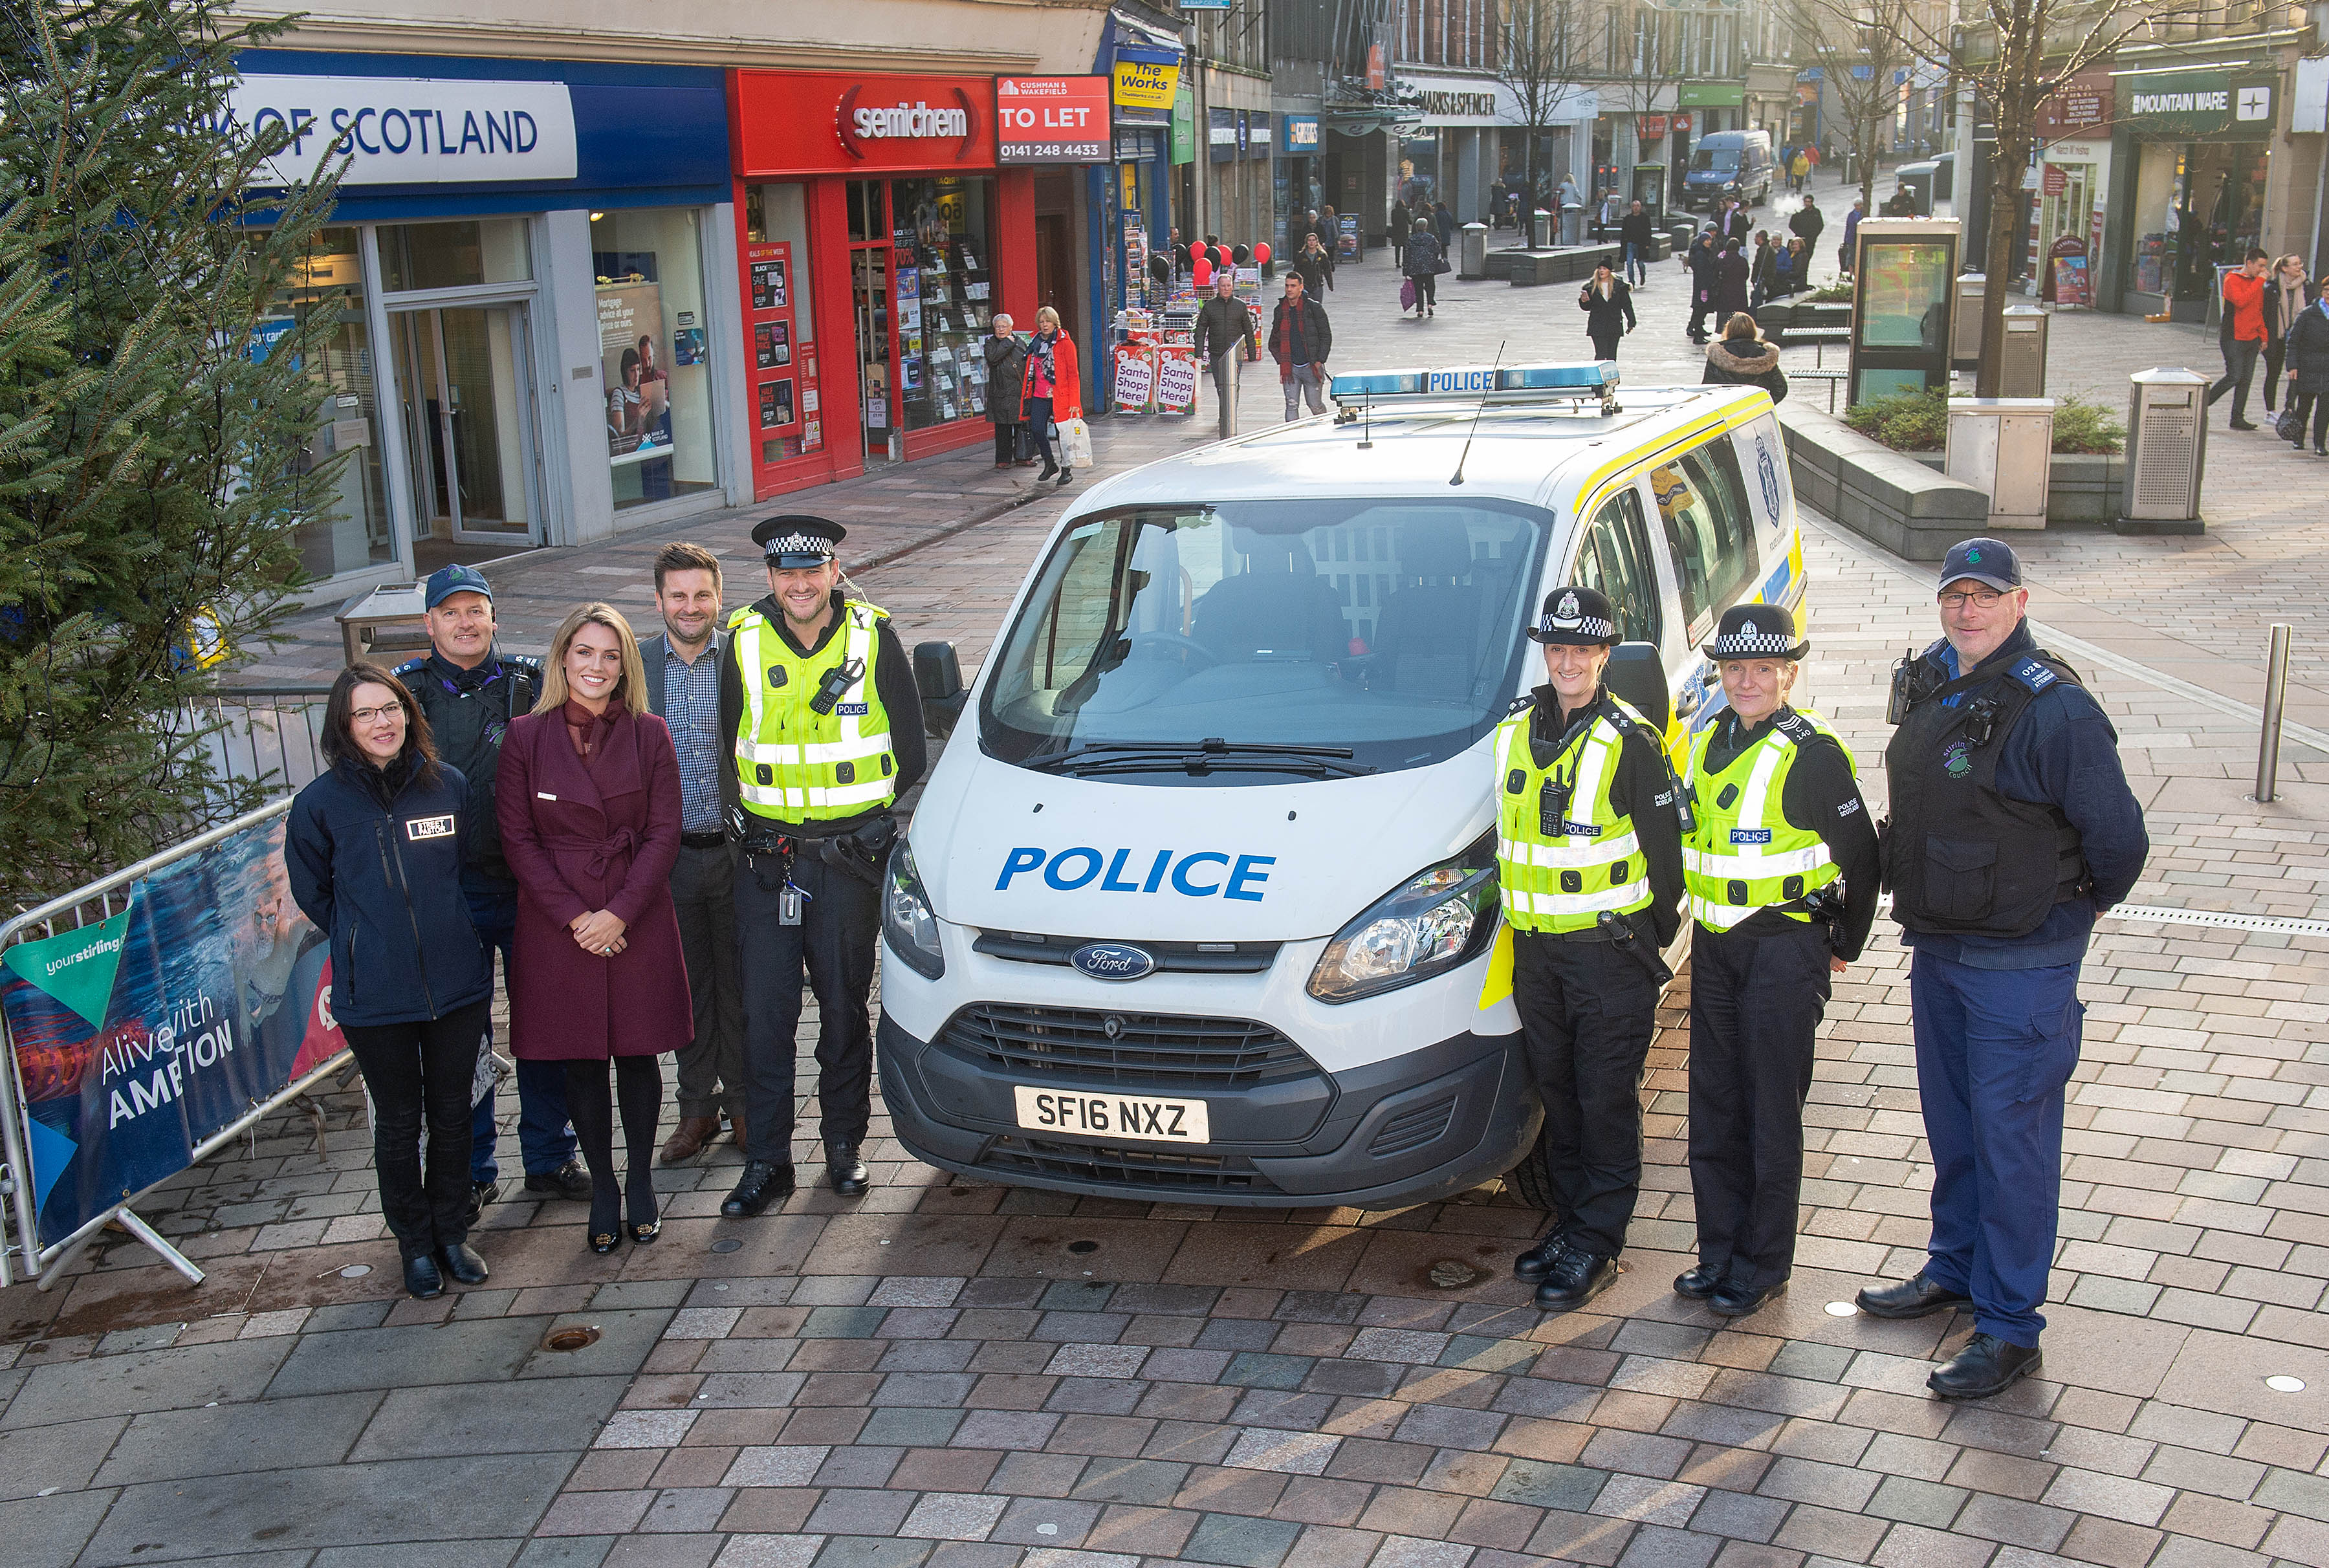 Steadfast - Safer Community Team and Police Scotland